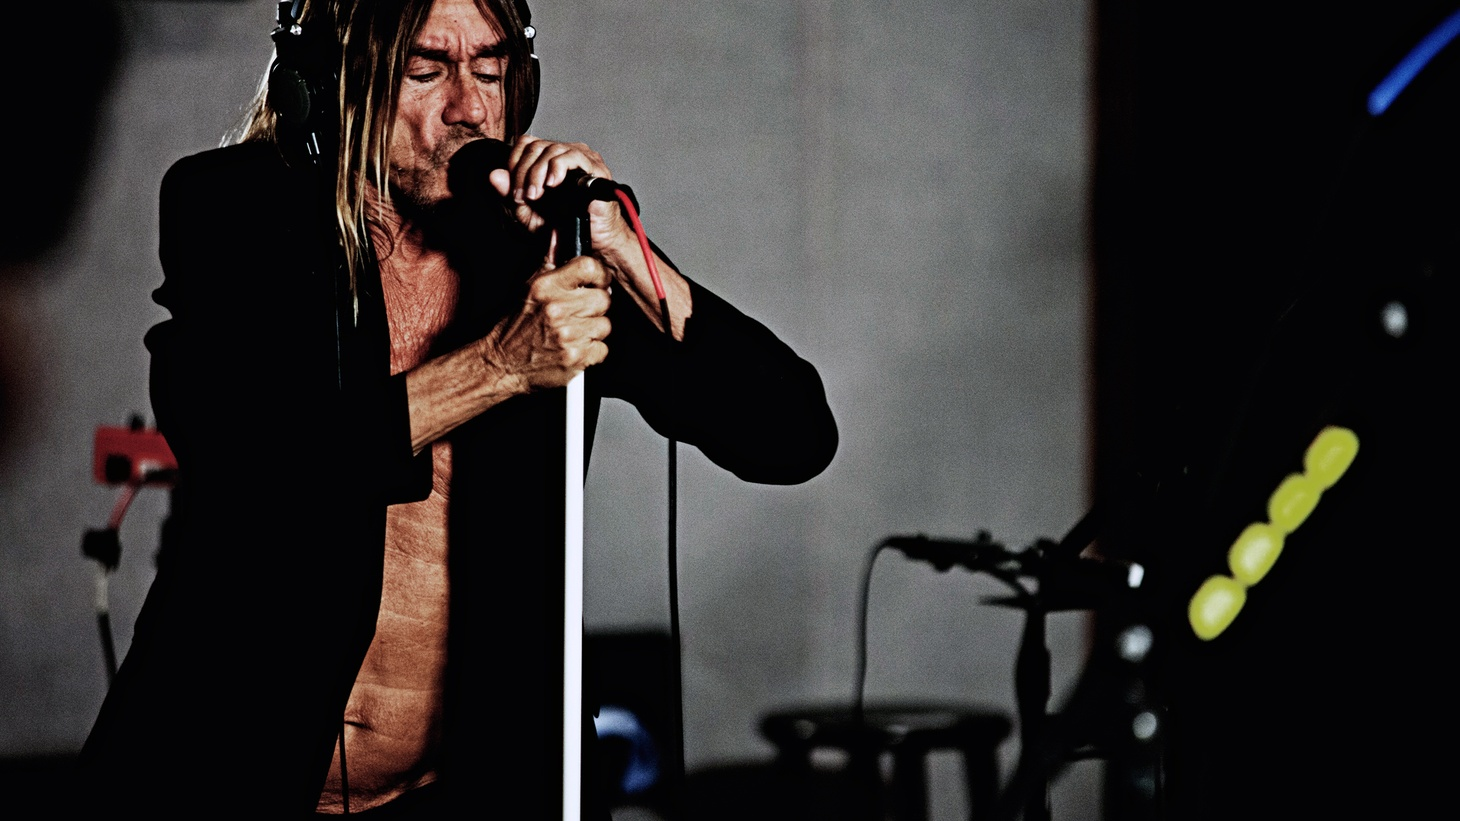 Today marks the release of Iggy Pop's Post Pop Depression album!